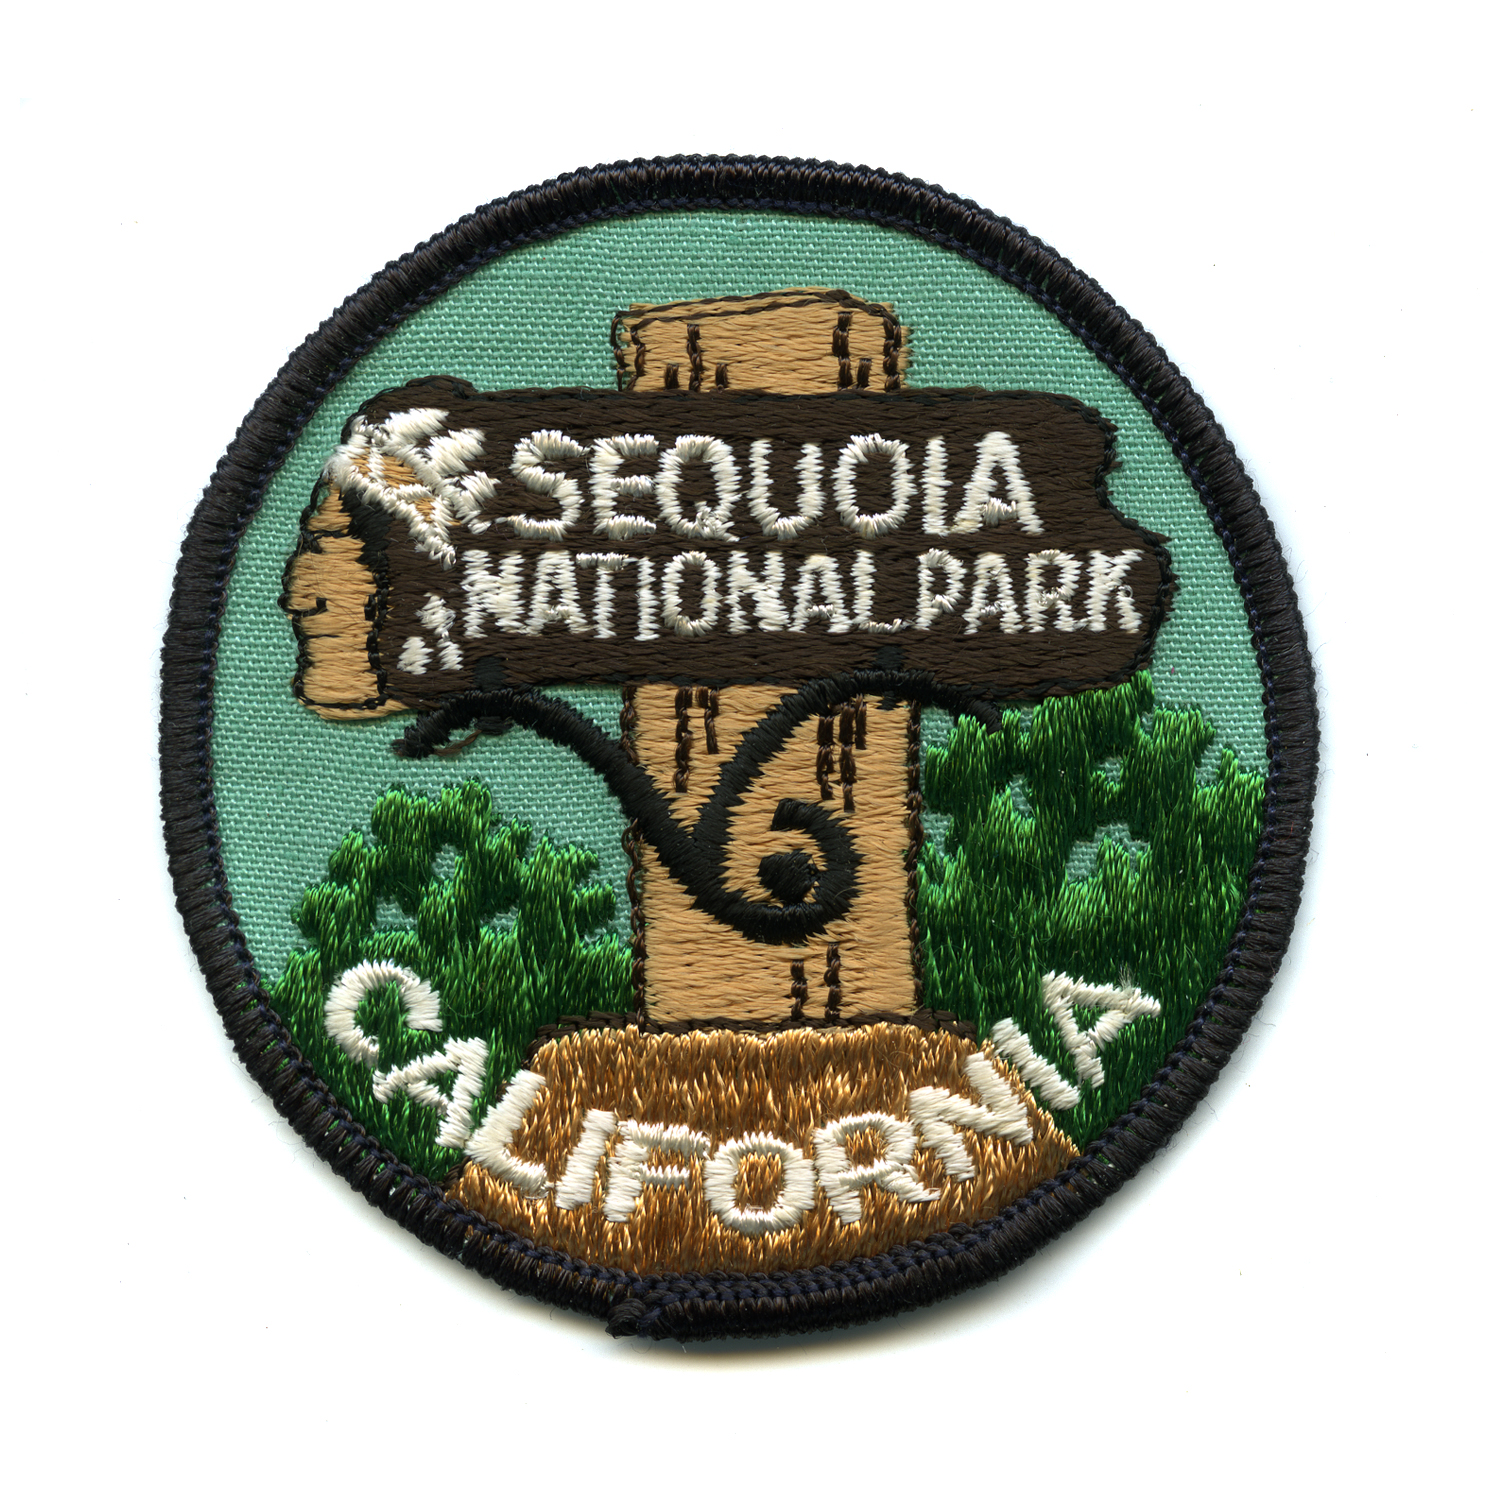 nps_patch_project_sequoia_national_park_patch_4.jpg